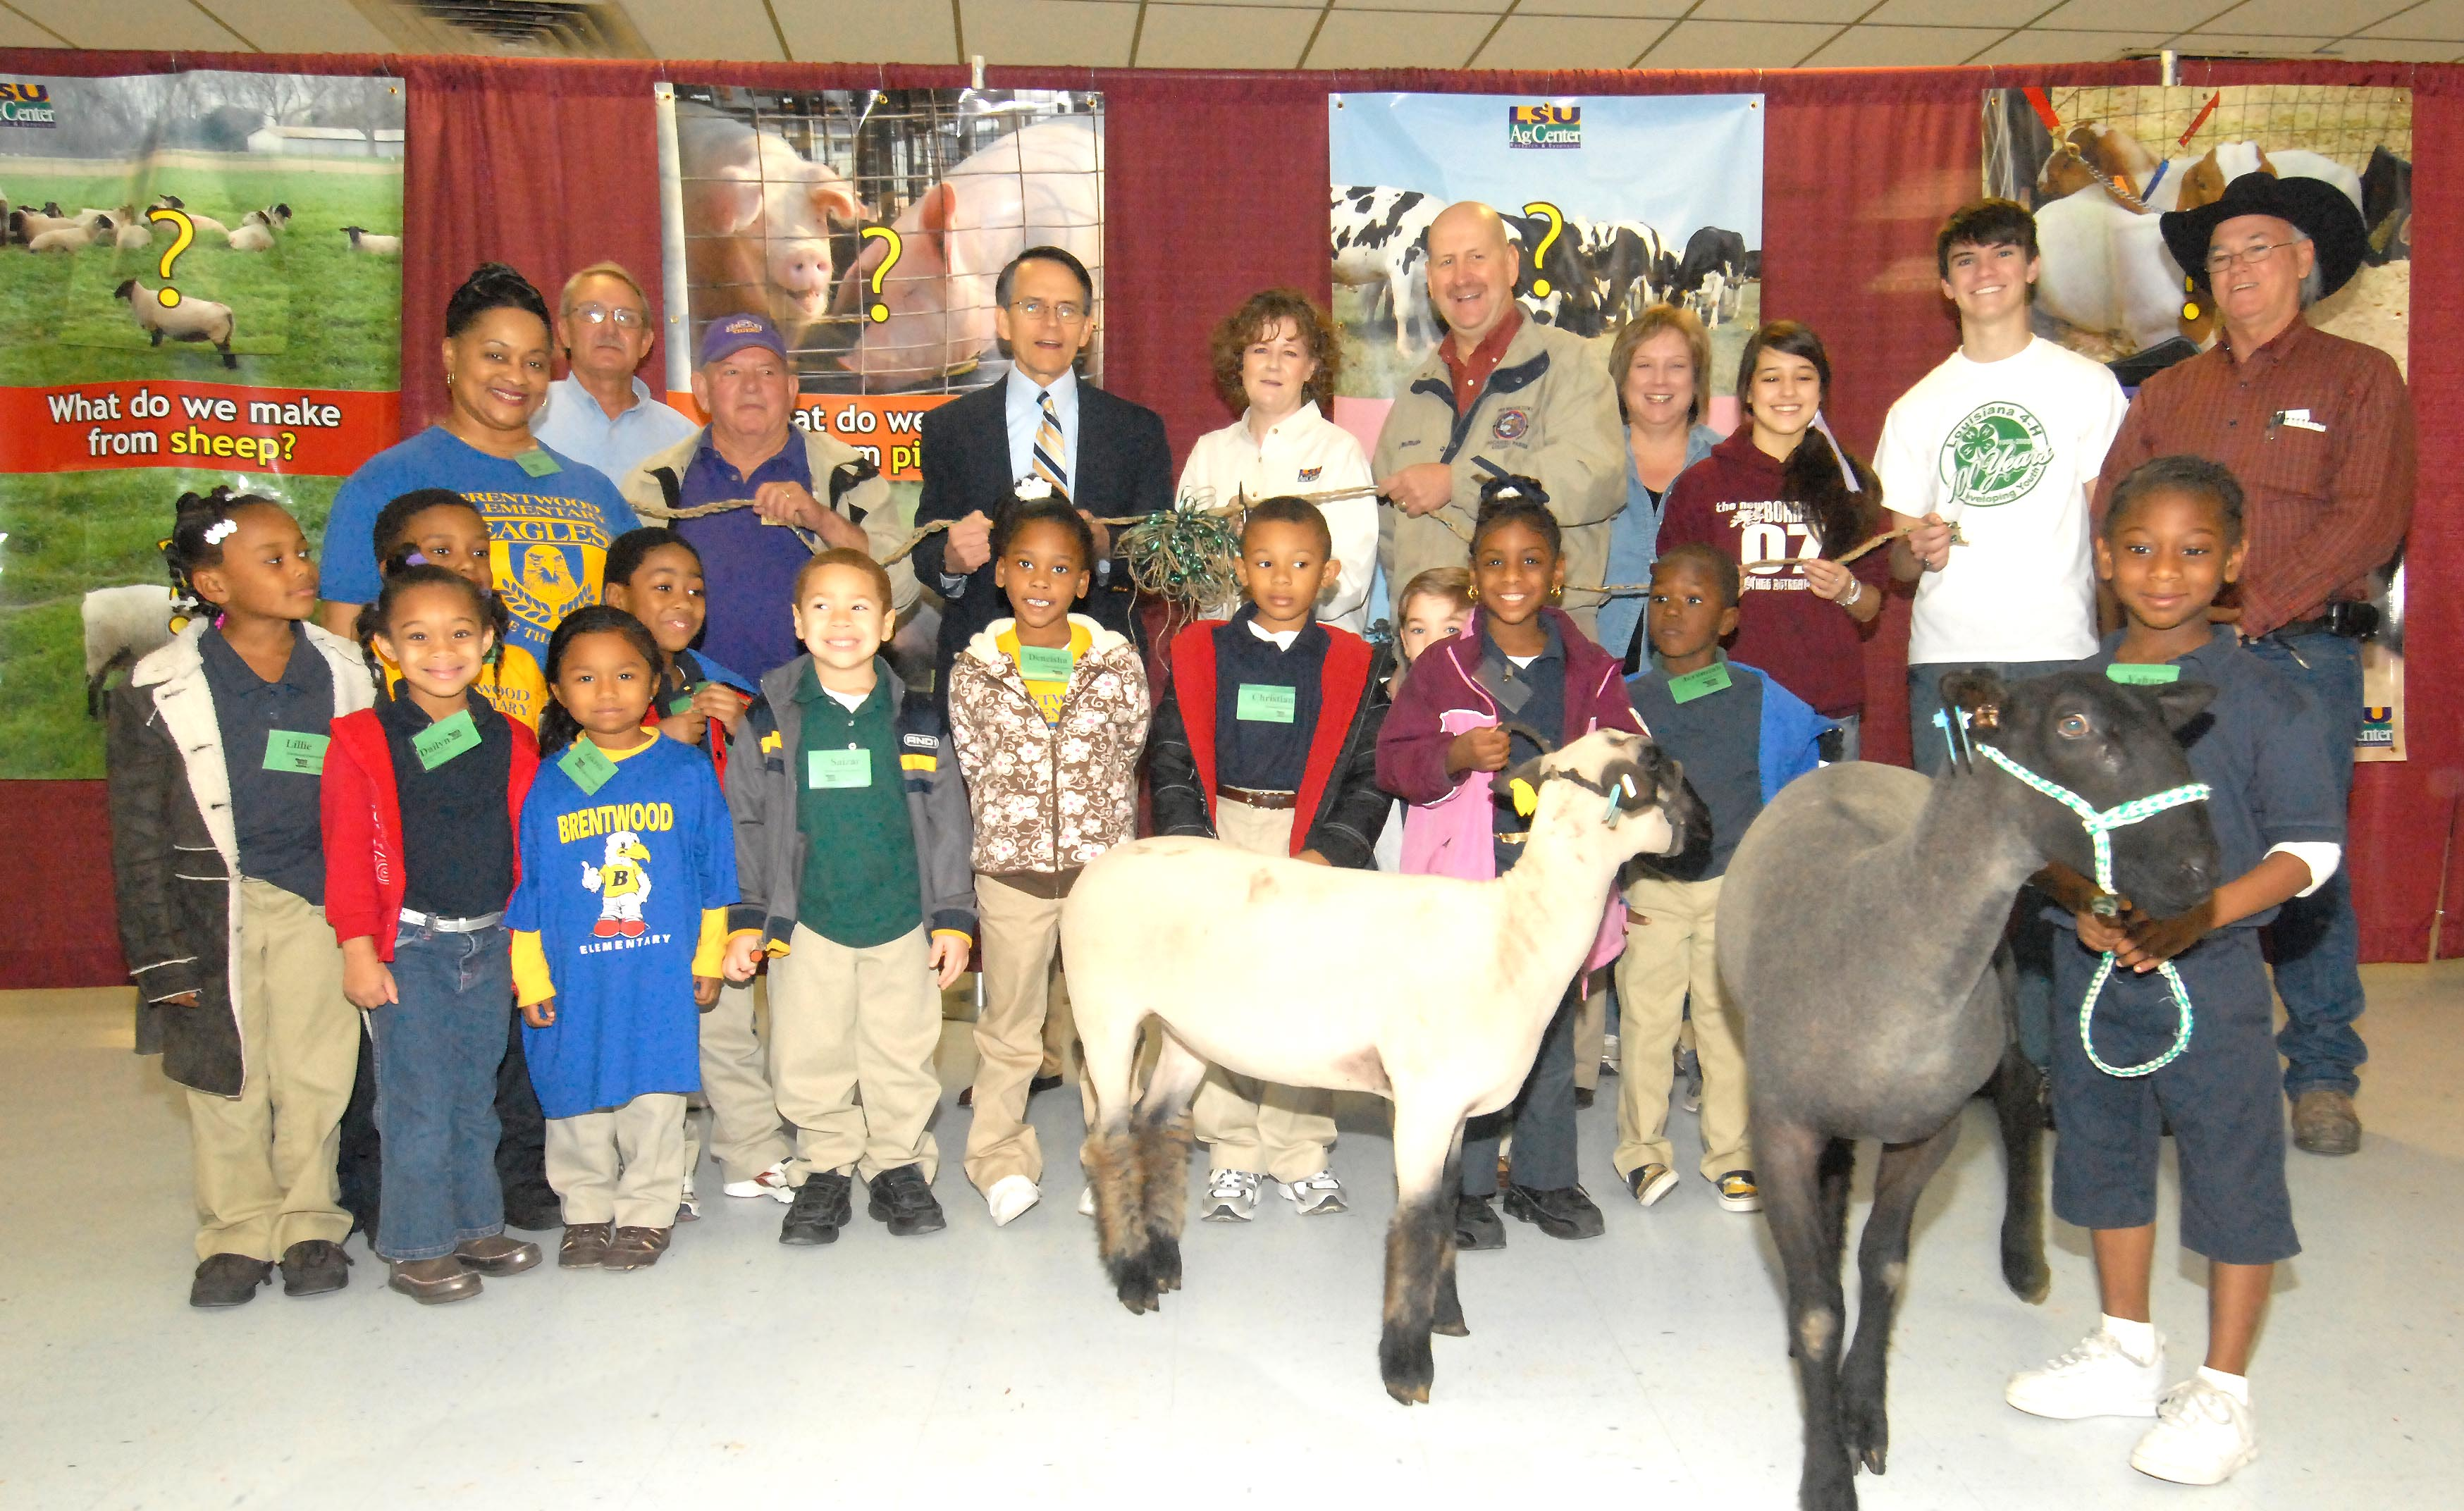 Kids see 'real' farm animals, learn about food at Ag Adventure